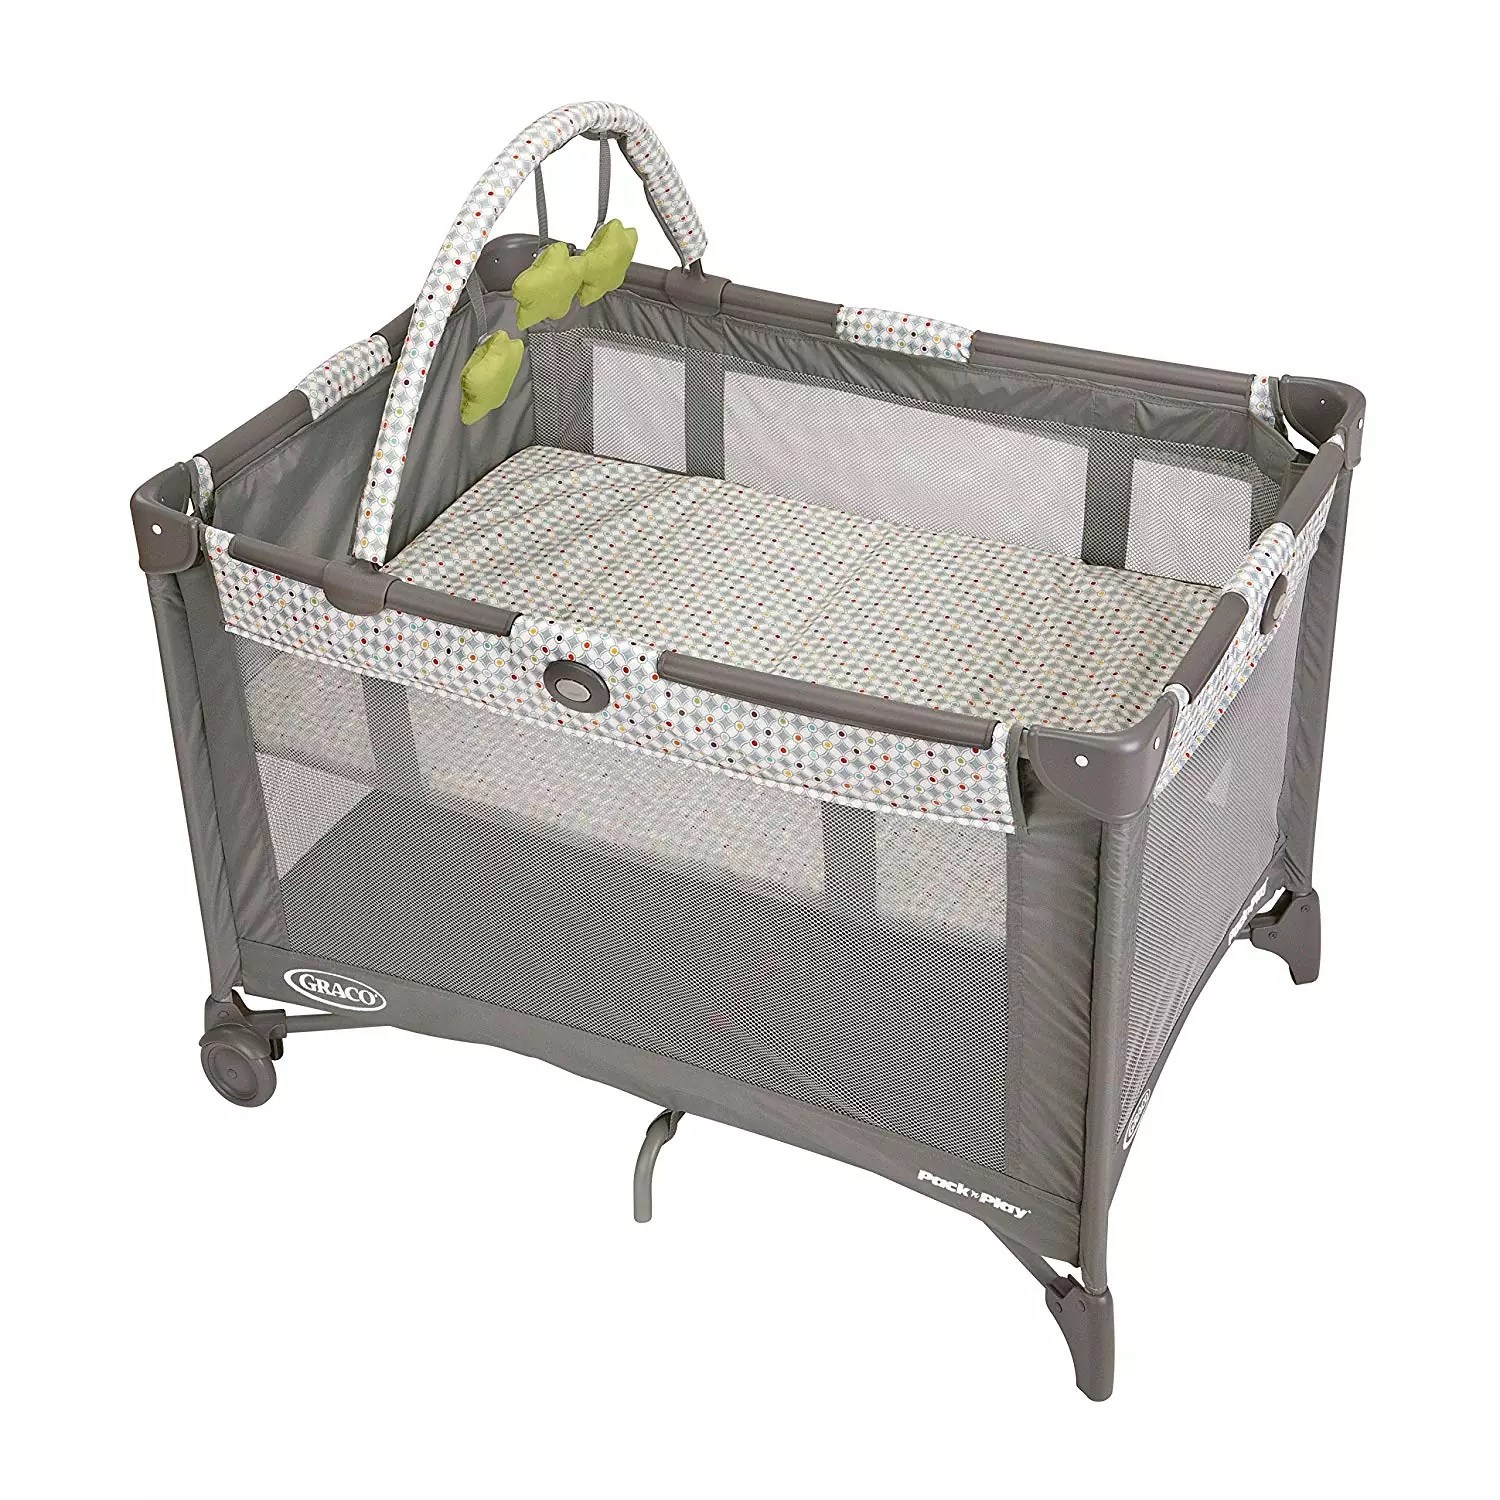 Graco Pack n Play On the Go Play yard